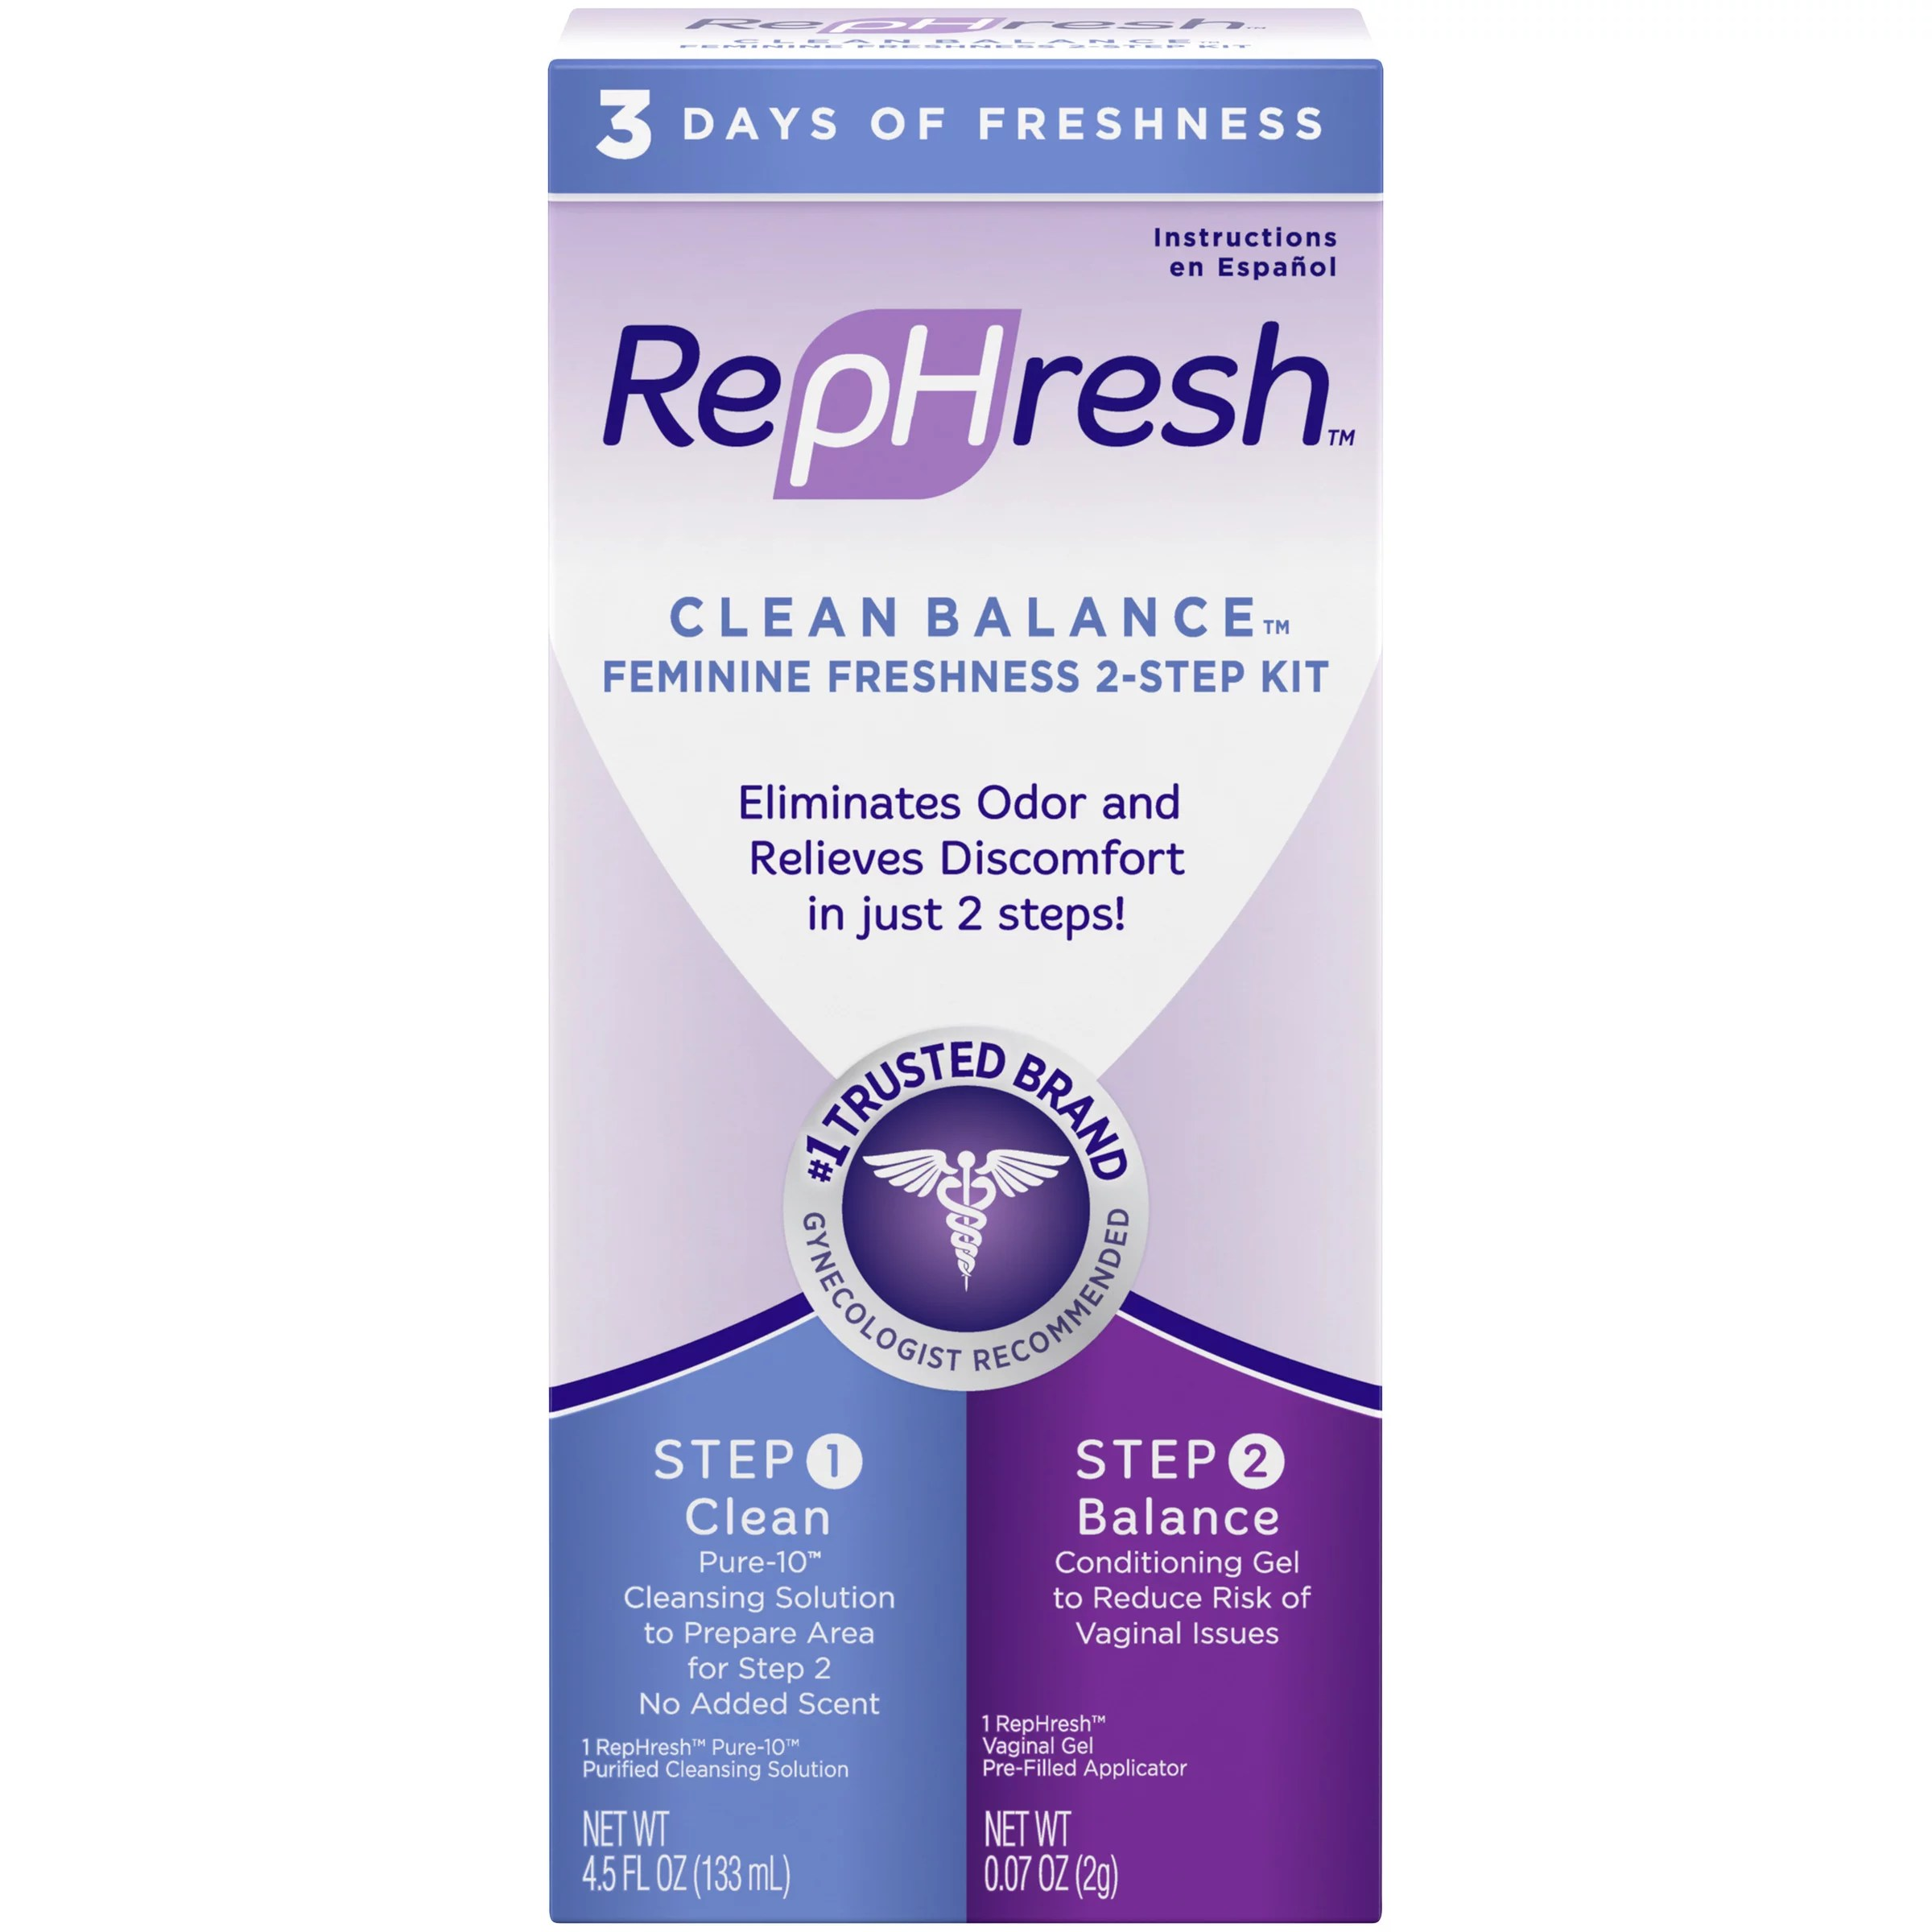 Part Douche Rephresh Clean Balance Feminine Freshness Kit Part 1 Cleans 4 5oz Bottle Part 2 Balances 07 Oz Gel Applicator